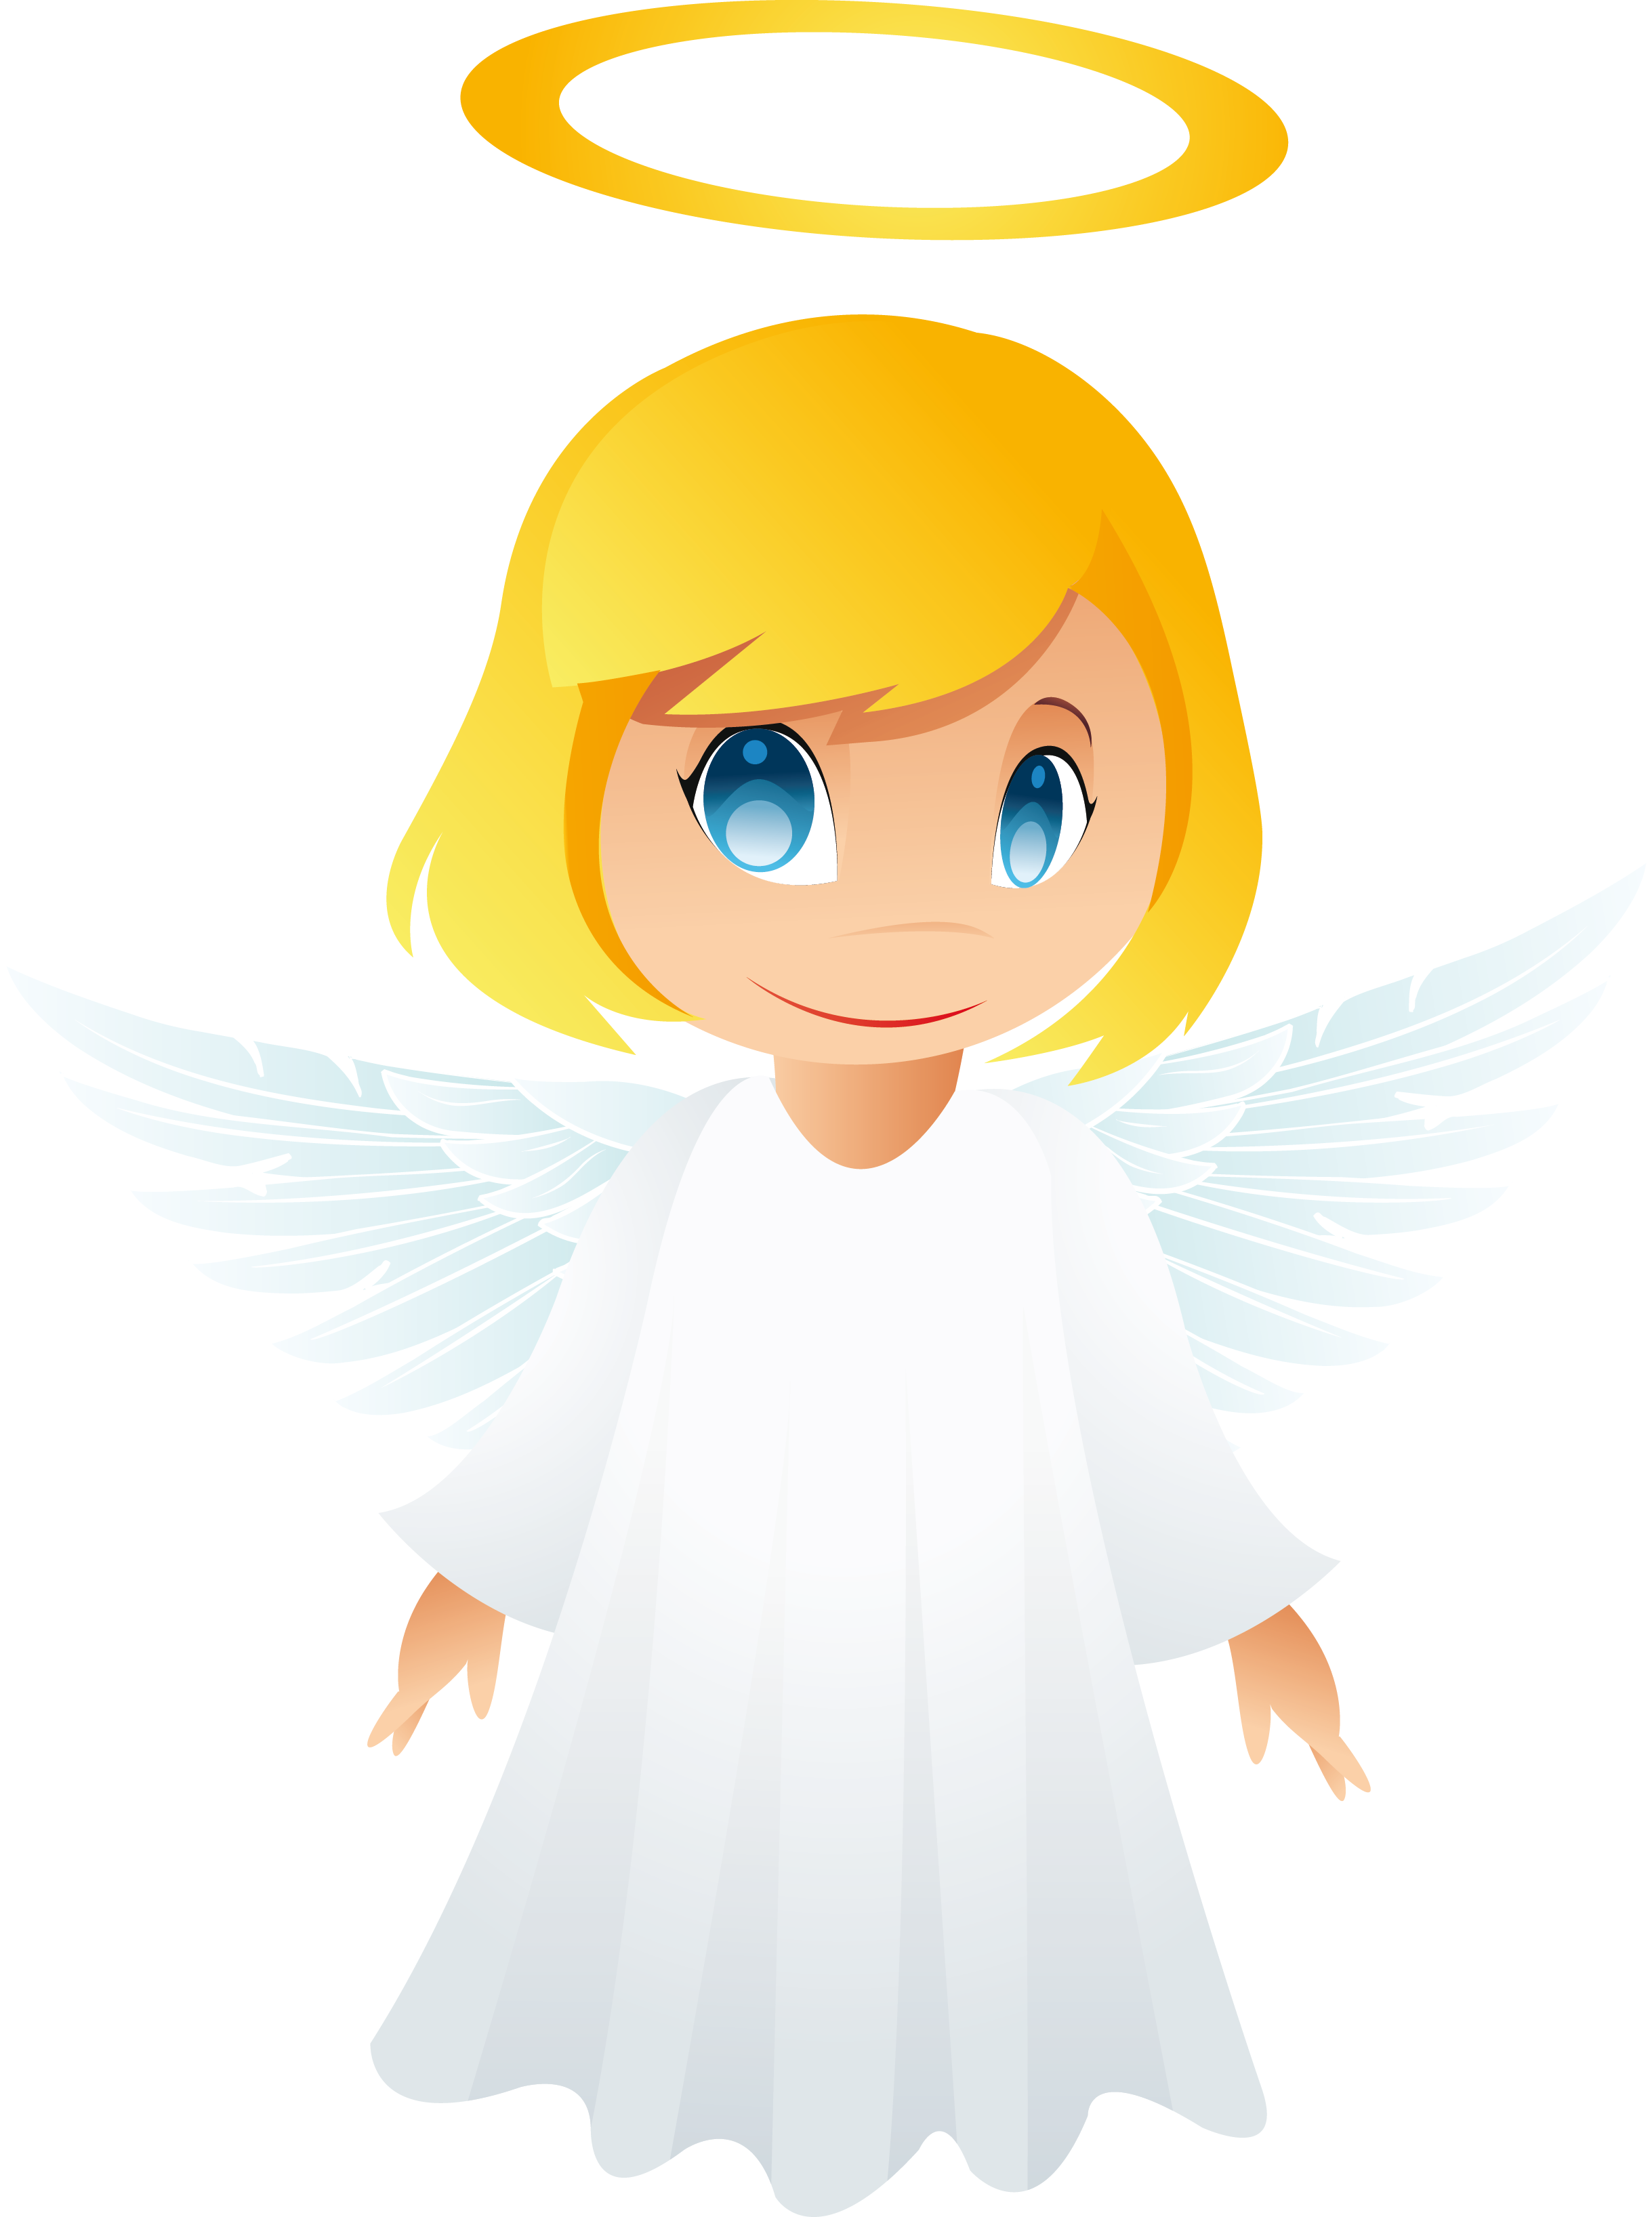 angel clipart free graphics of cherubs and angels the cliparts rh pinterest com angel clip art free printable angel clip art free images